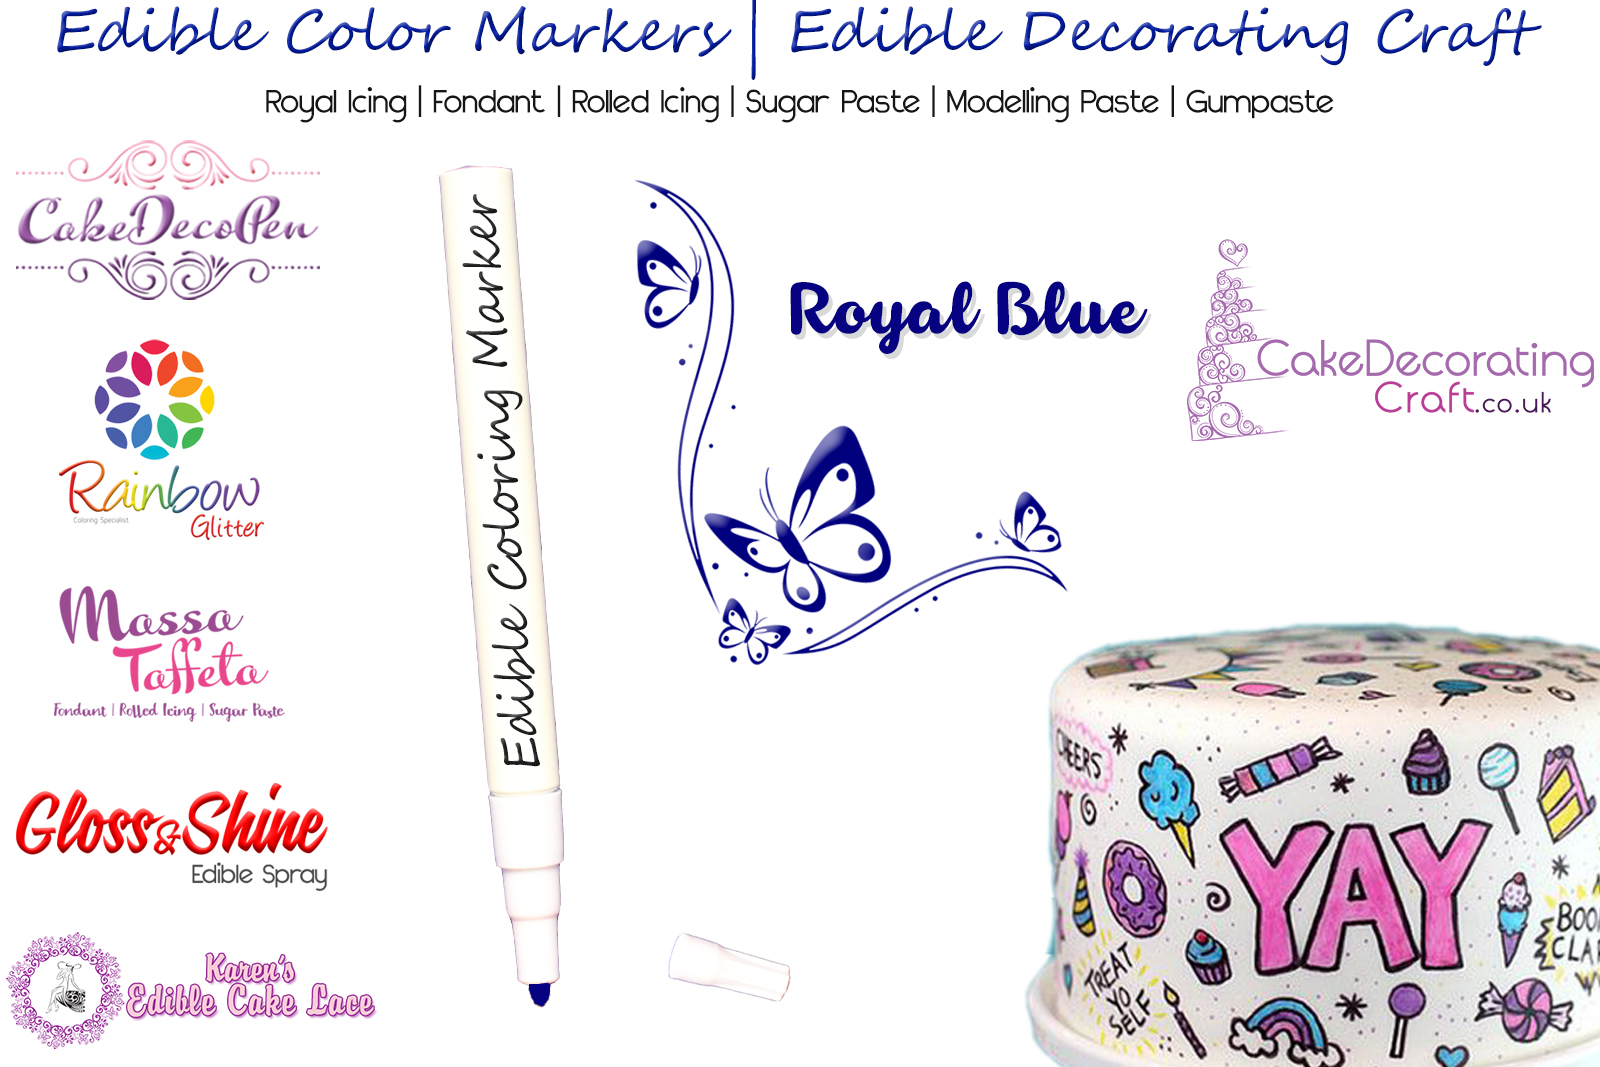 Cake Decorating Craft | Icing Pen | Icing Colouring Marker | Edible Painting Ink | Royal Blue | Christmas Cake Cupcake Decorating Craft